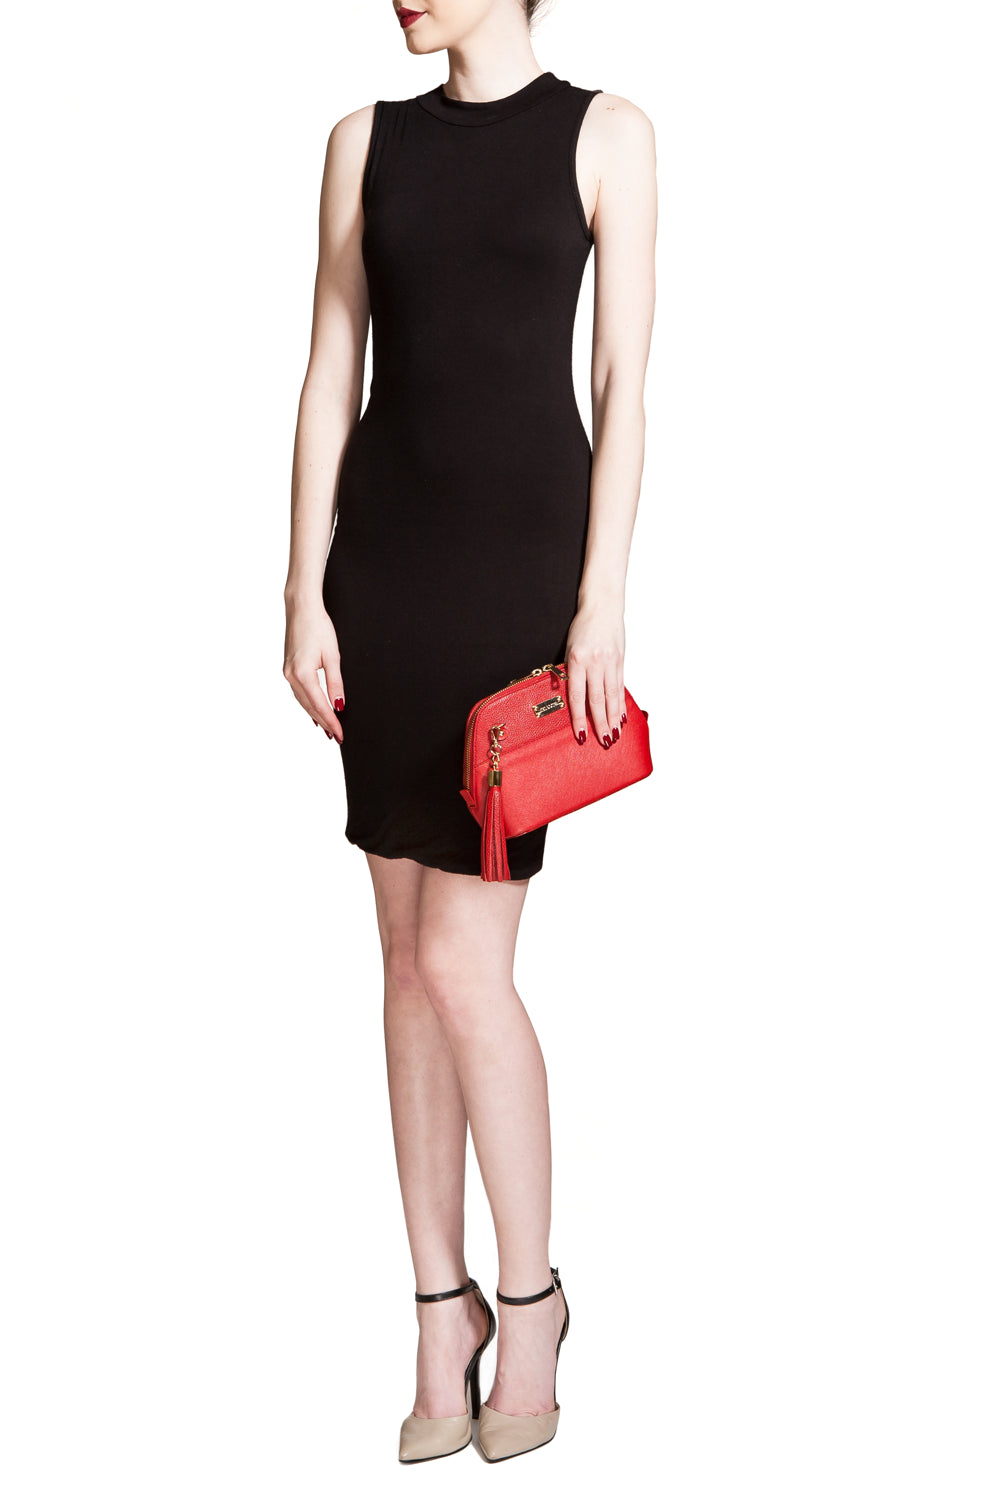 Red Saffiano Leather 'Watson Mini' Cross-Body & Clutch | Mel Boteri | Model Clutch